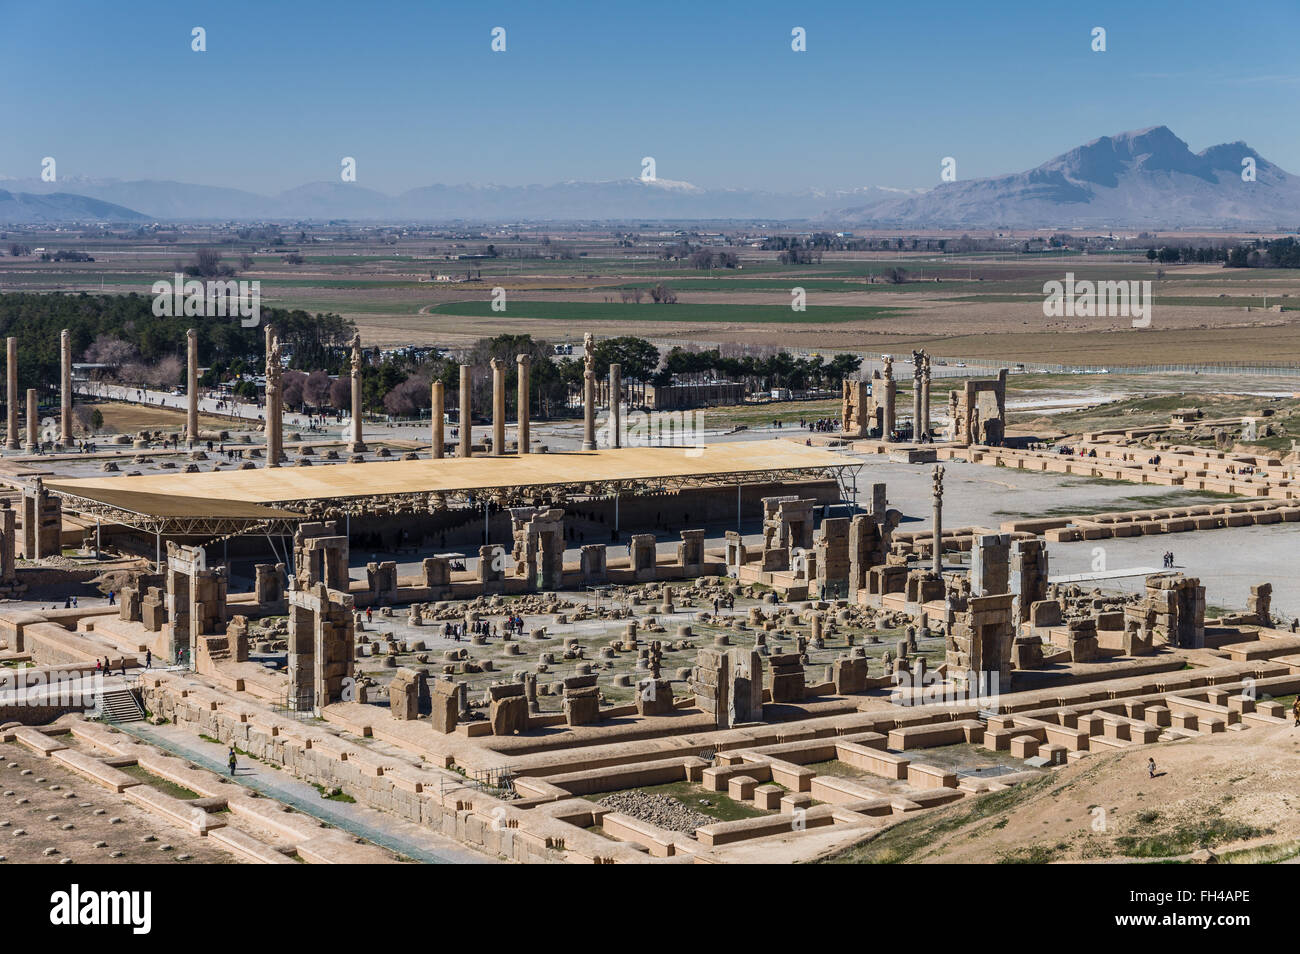 D'anciennes ruines de Persépolis, la ville la plus importante de l'ancienne Perse. Iran, 2016 Photo Stock